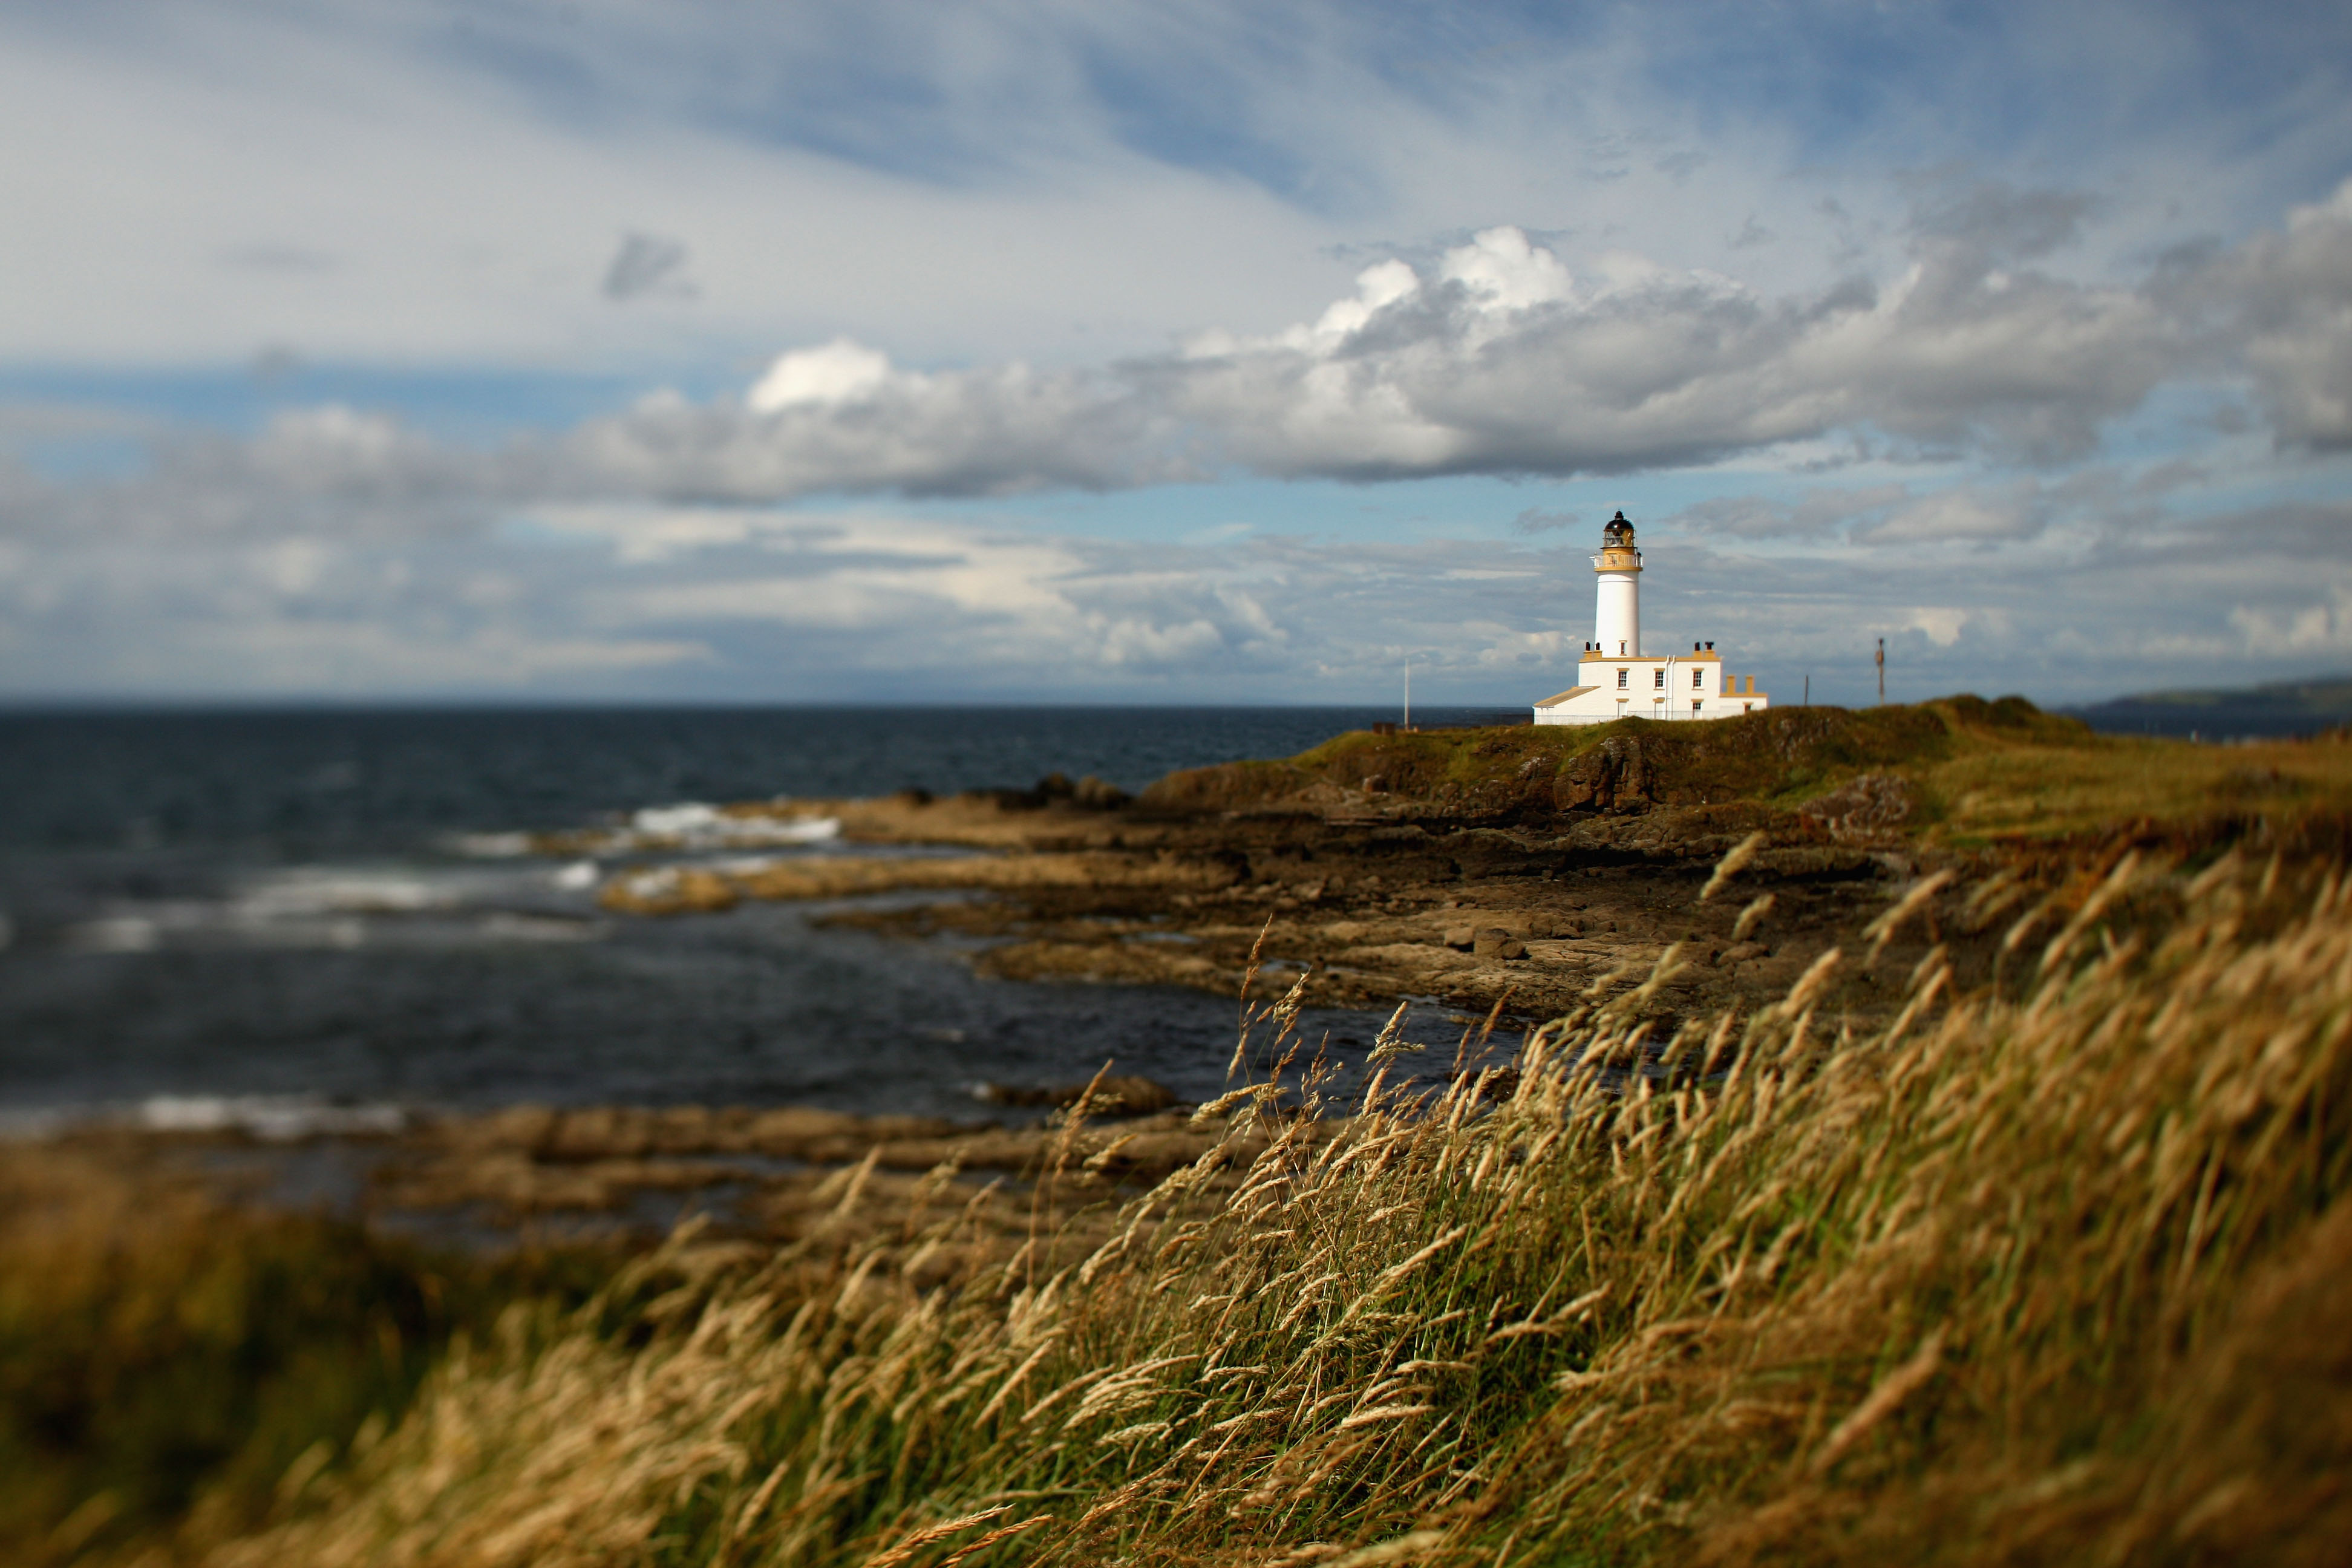 Trump Turnberry lighthouse